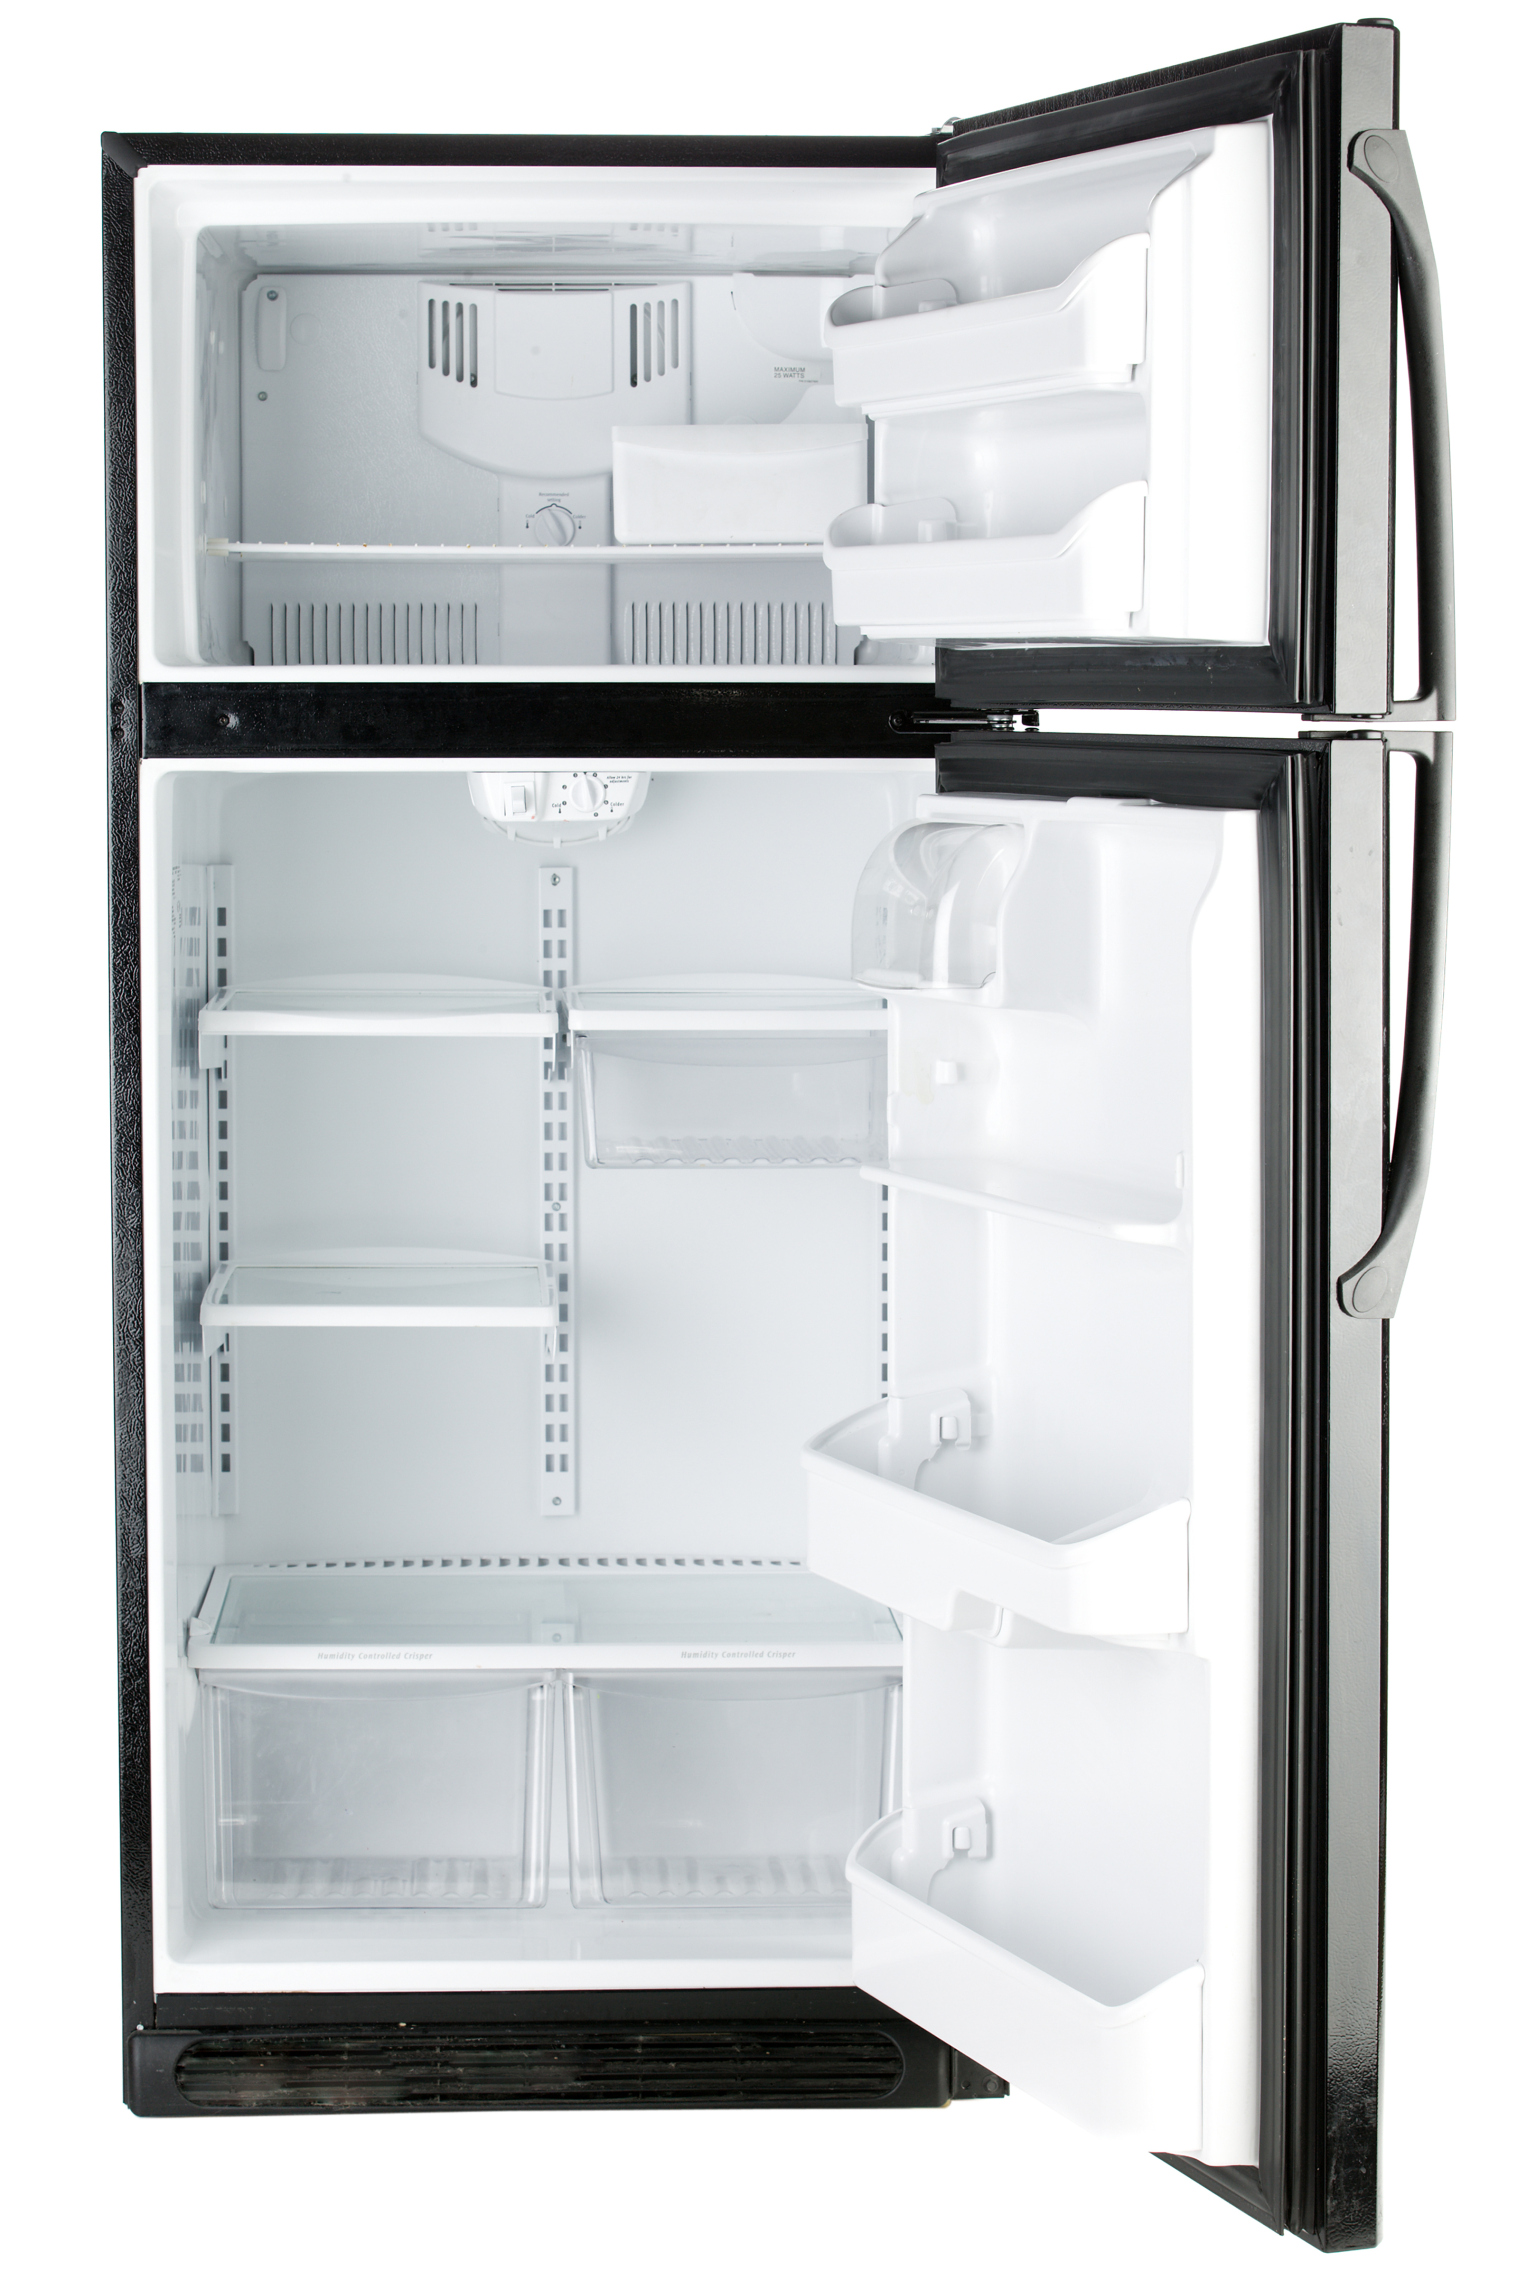 How To Fix A Refrigerator Door That Doesn T Shut Tightly